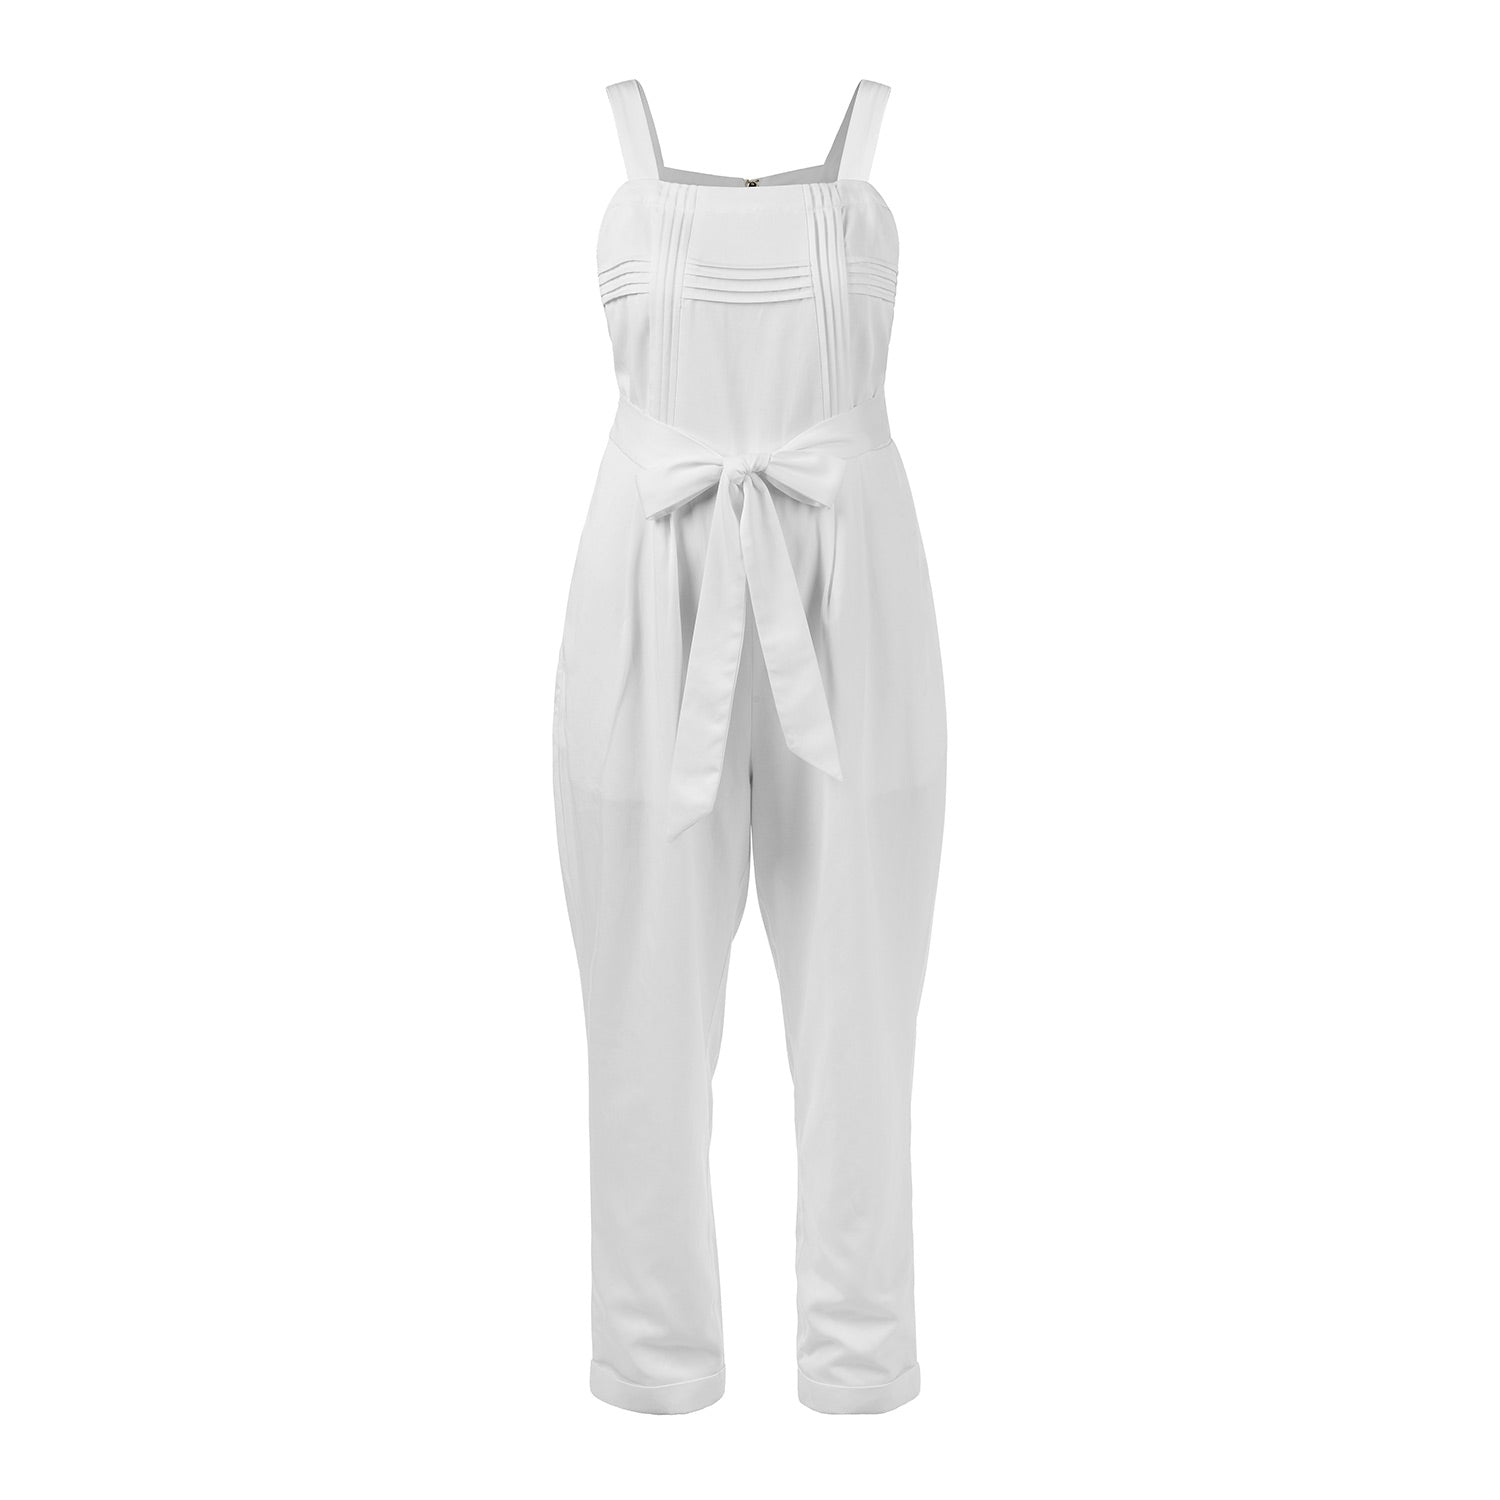 THE MISHA JUMPSUIT